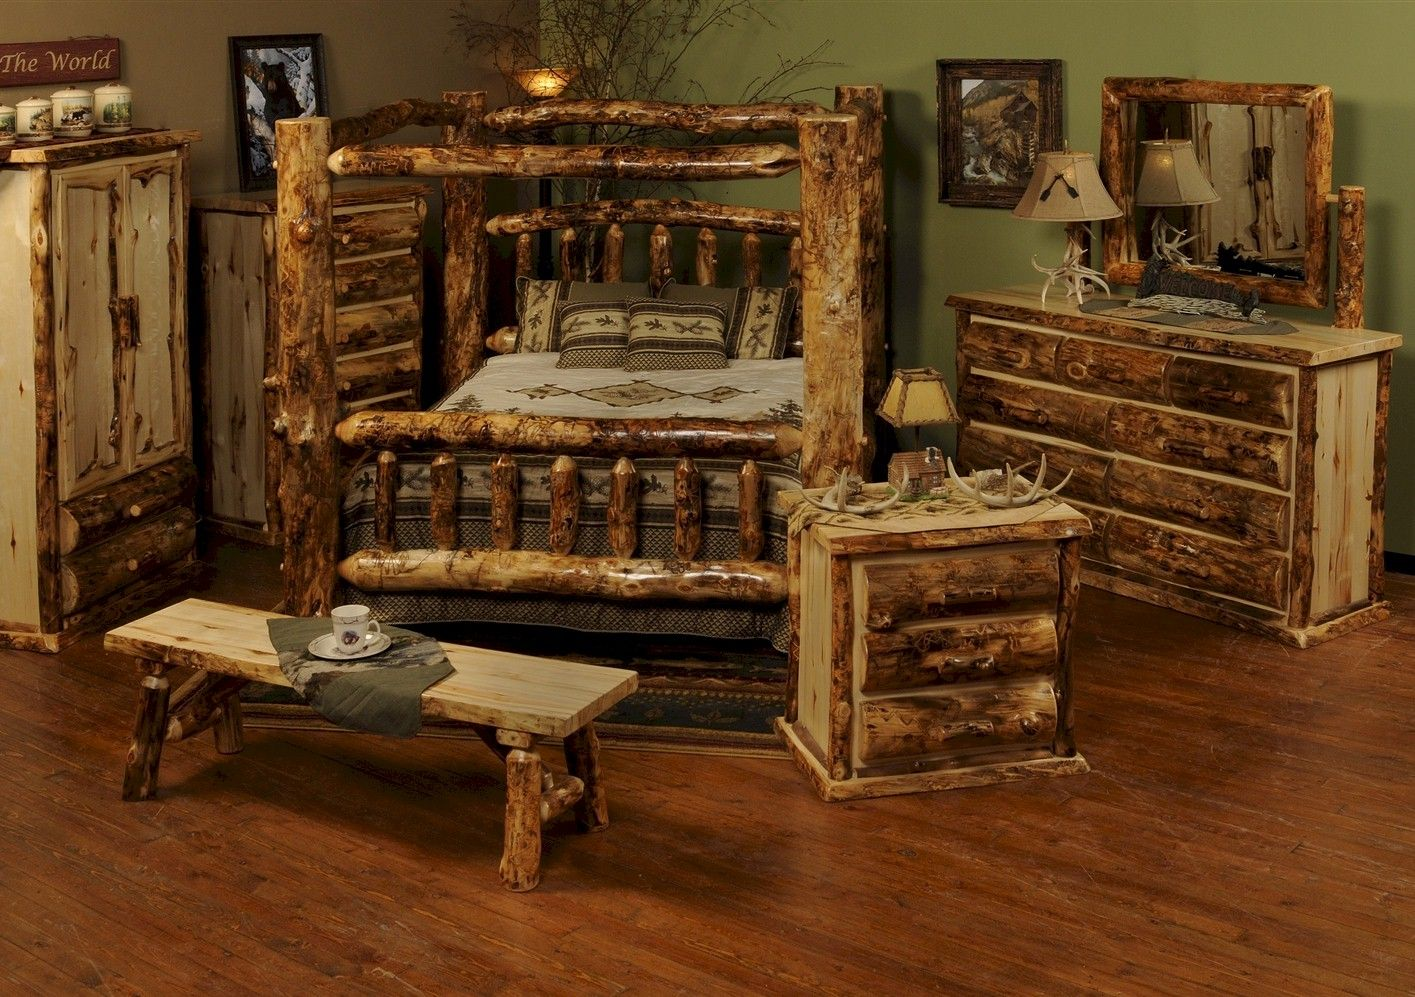 5 creative and unique furniture ideas for your bedroom | aspen